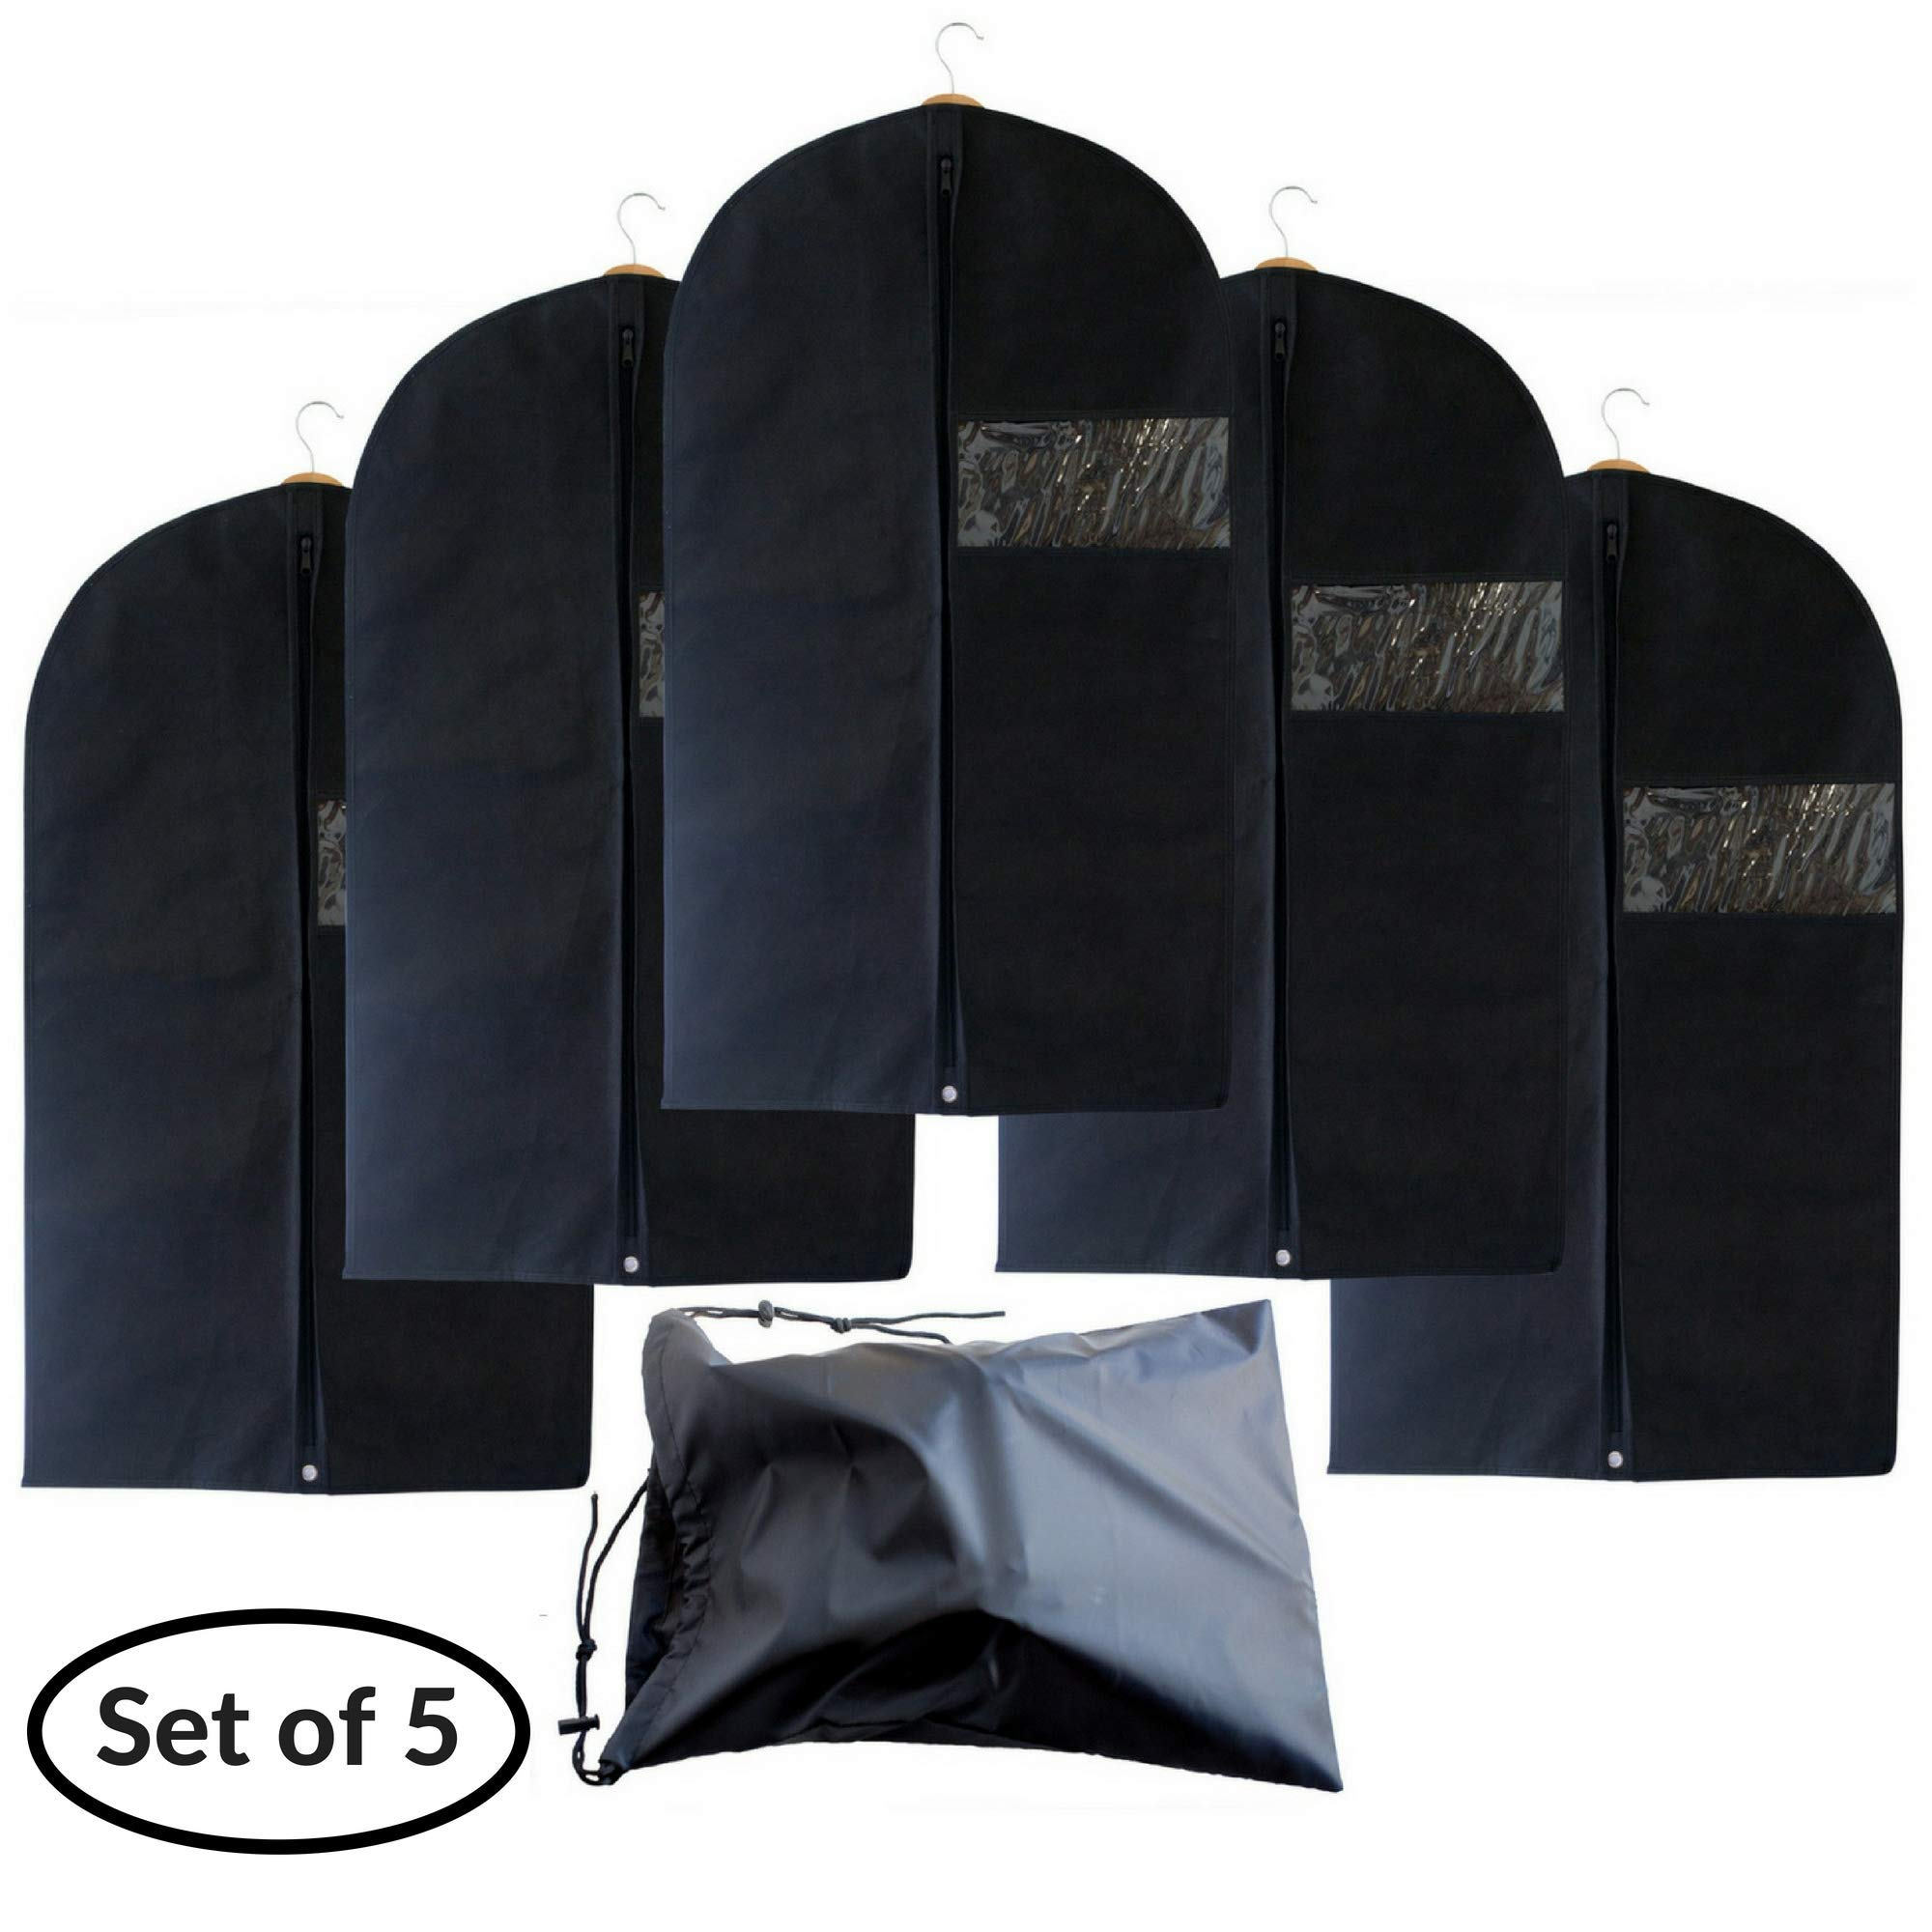 Garment Bags with Shoe Bag - Breathable Garment Bag Covers Set of 5 for Suit Carriers, Dresses, Linens, Storage or Travel - Suit Bag with Clear Window by B&C Home Goods (Image #7)